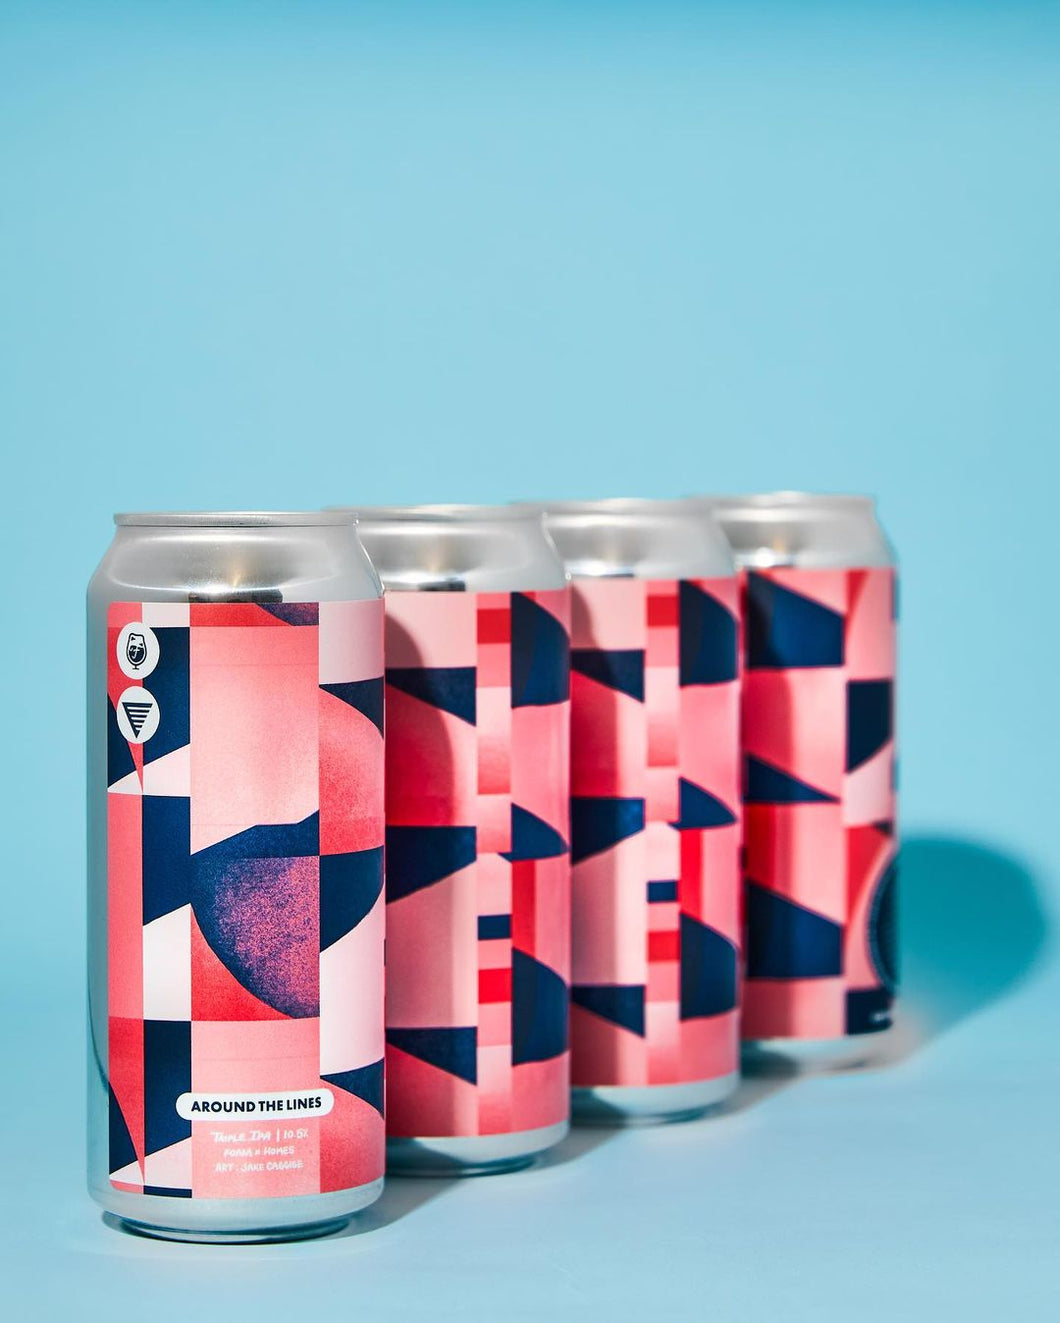 Around The Lines (HOMES Collab) - TIPA (Cans)